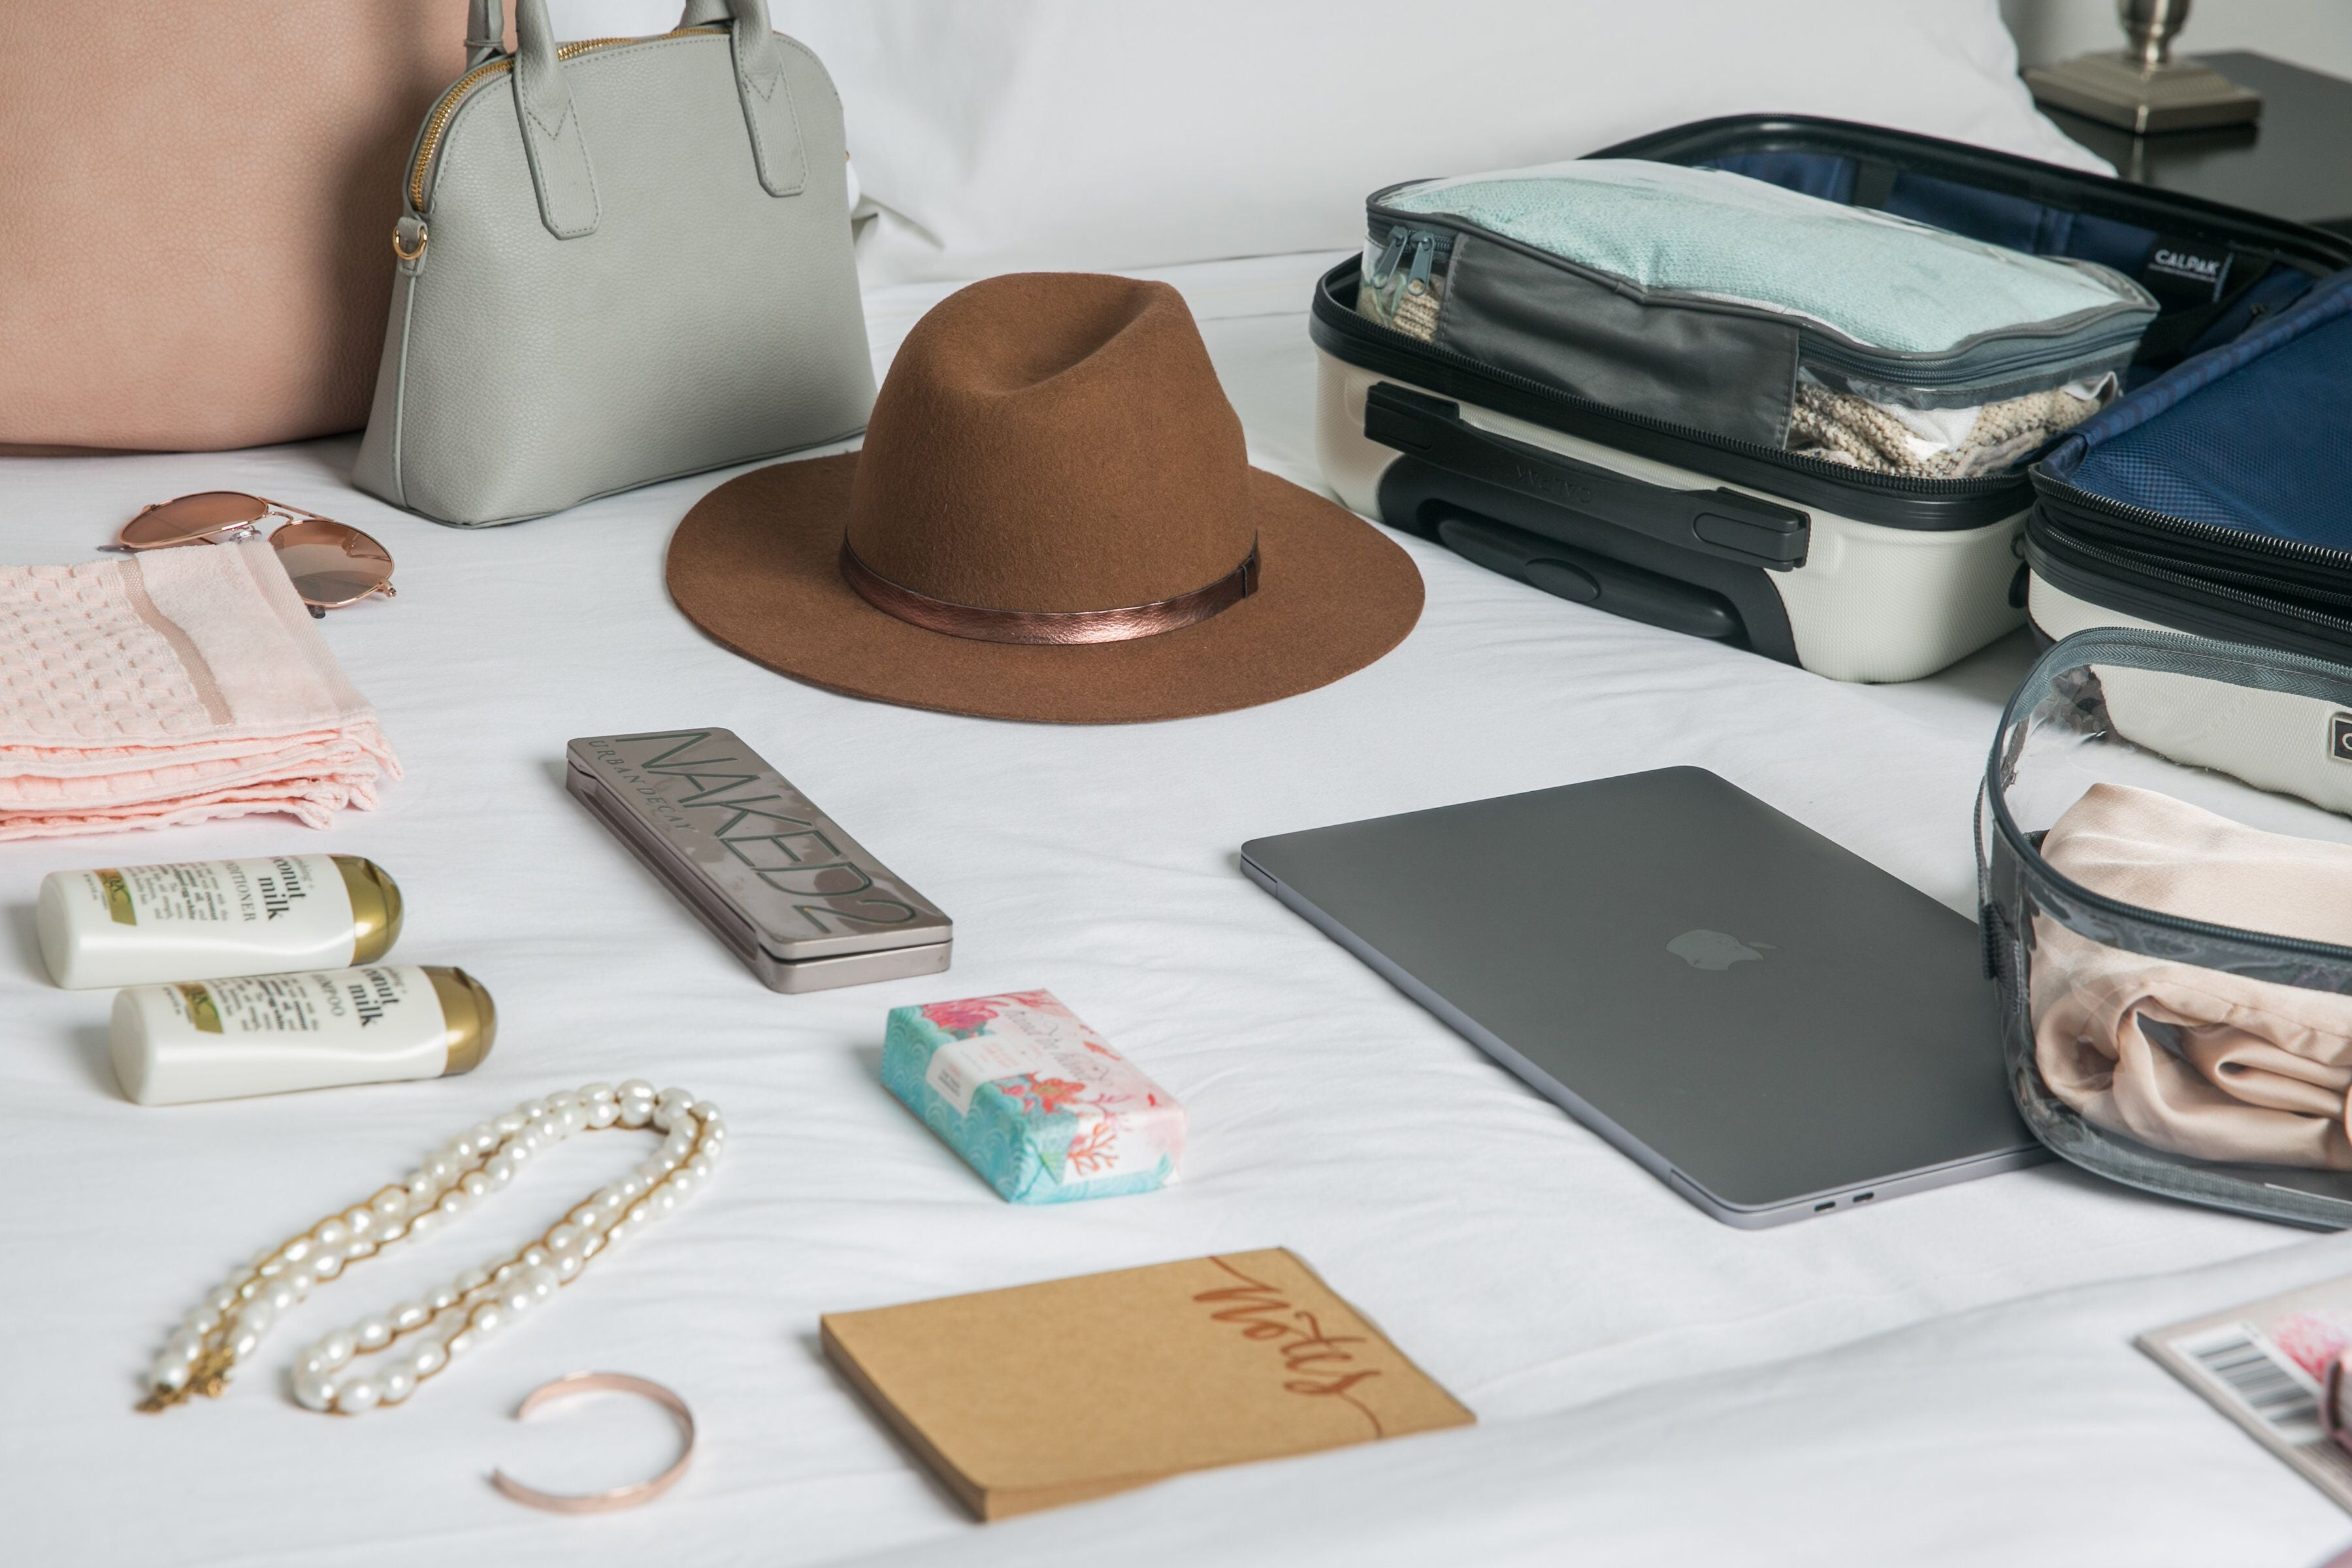 Valuables like jewelry and laptop packed in carry on